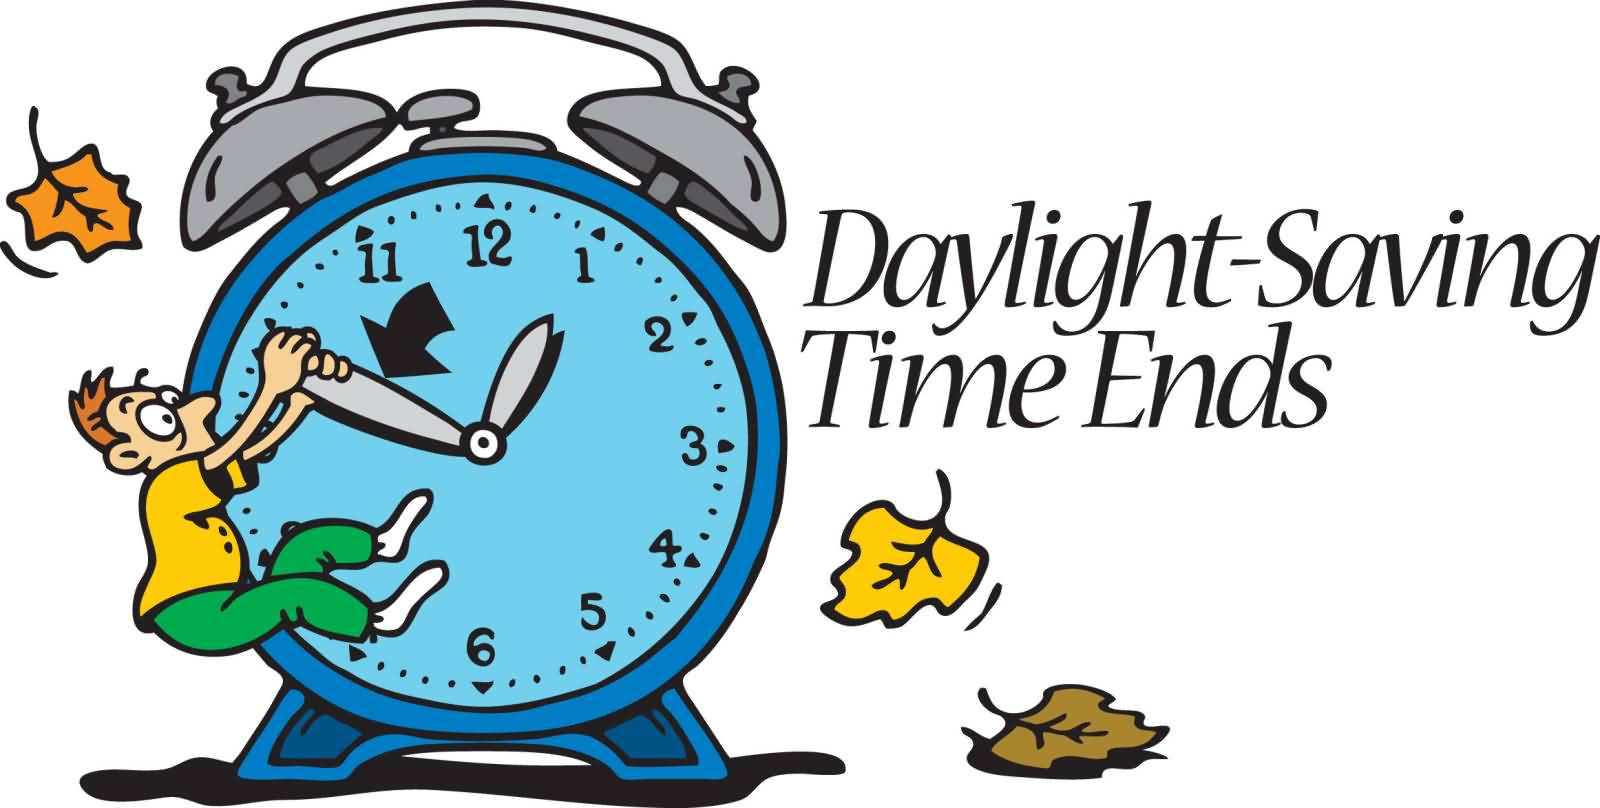 End of daylight savings time clip art